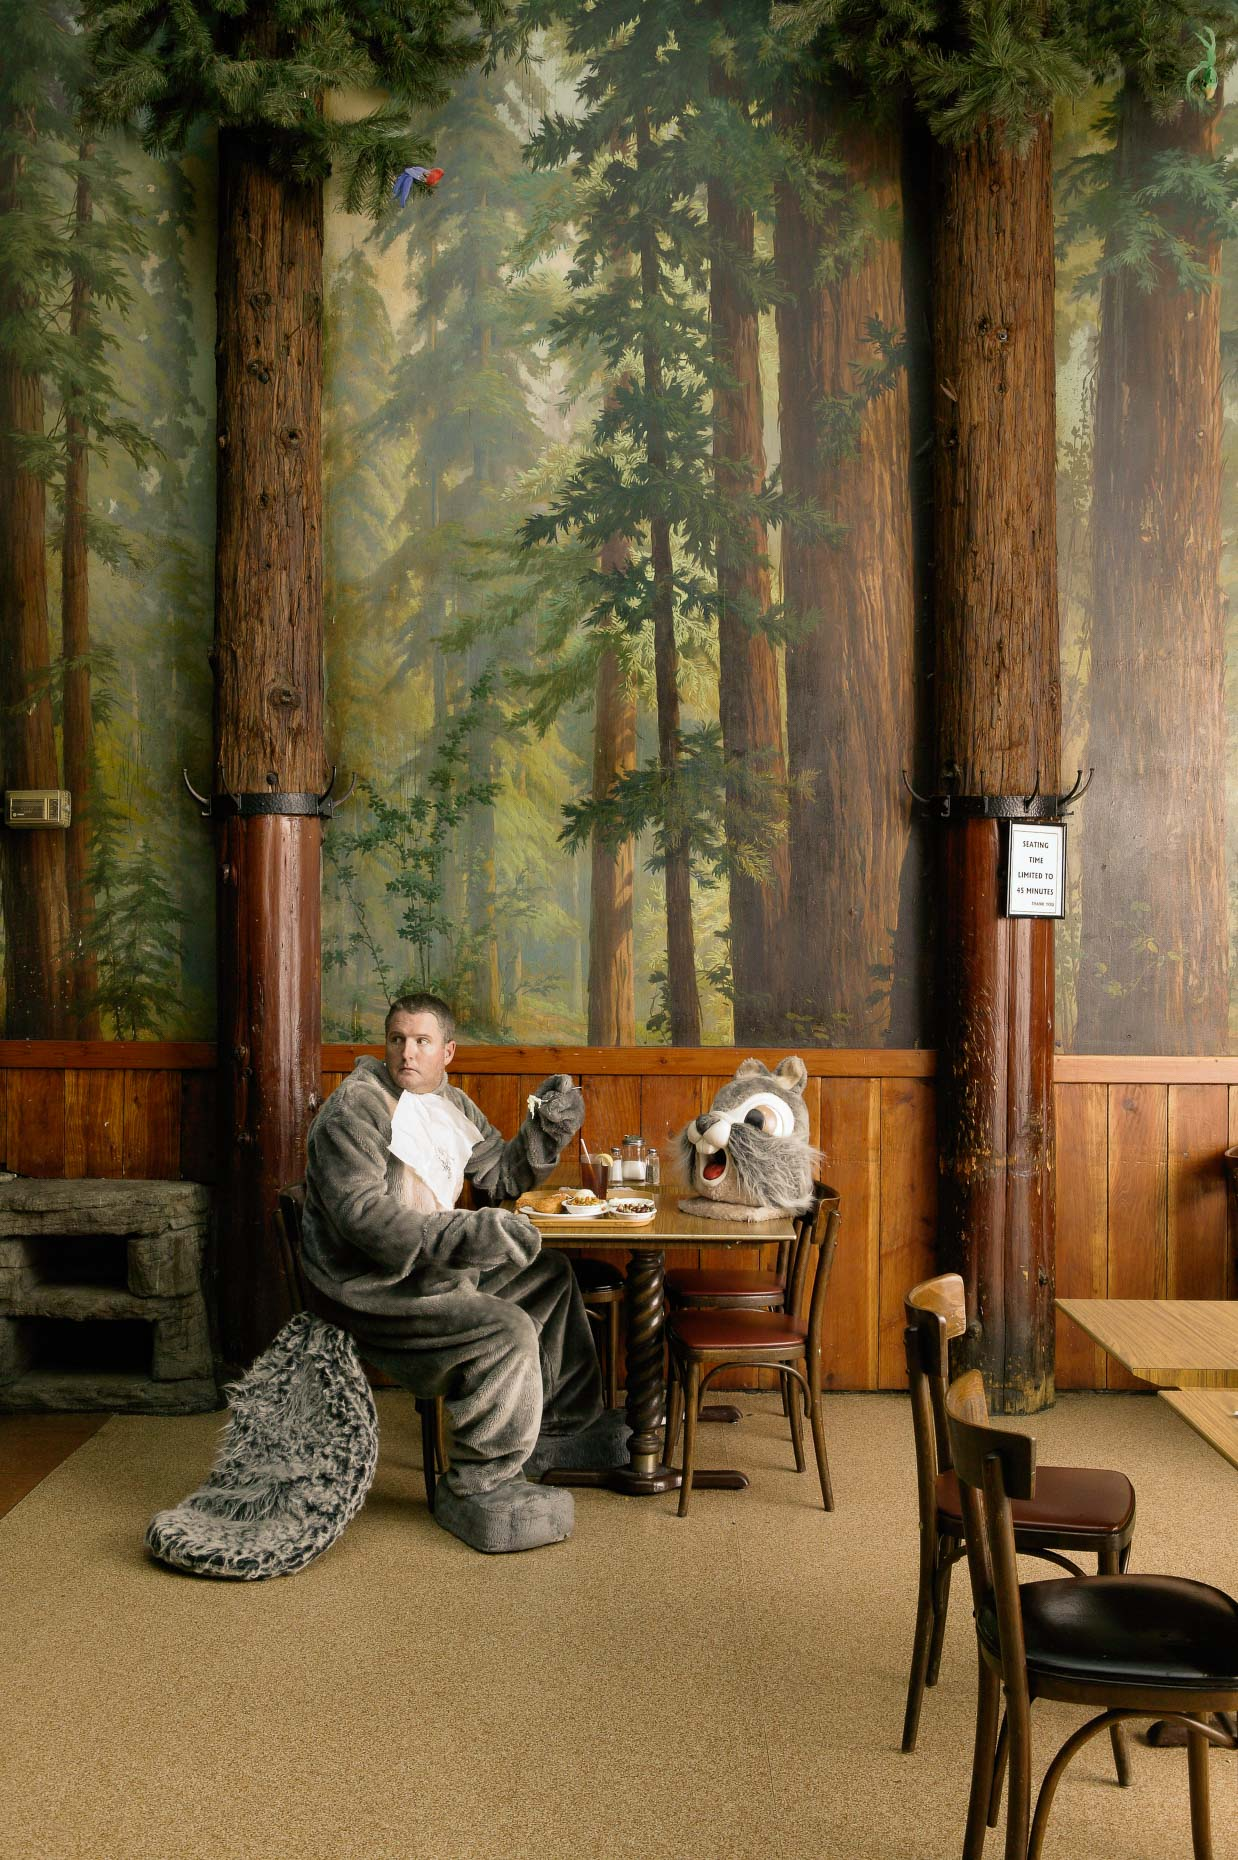 Man in squirrel costume sitting at restaurant table with forest themed decor by David Zaitz